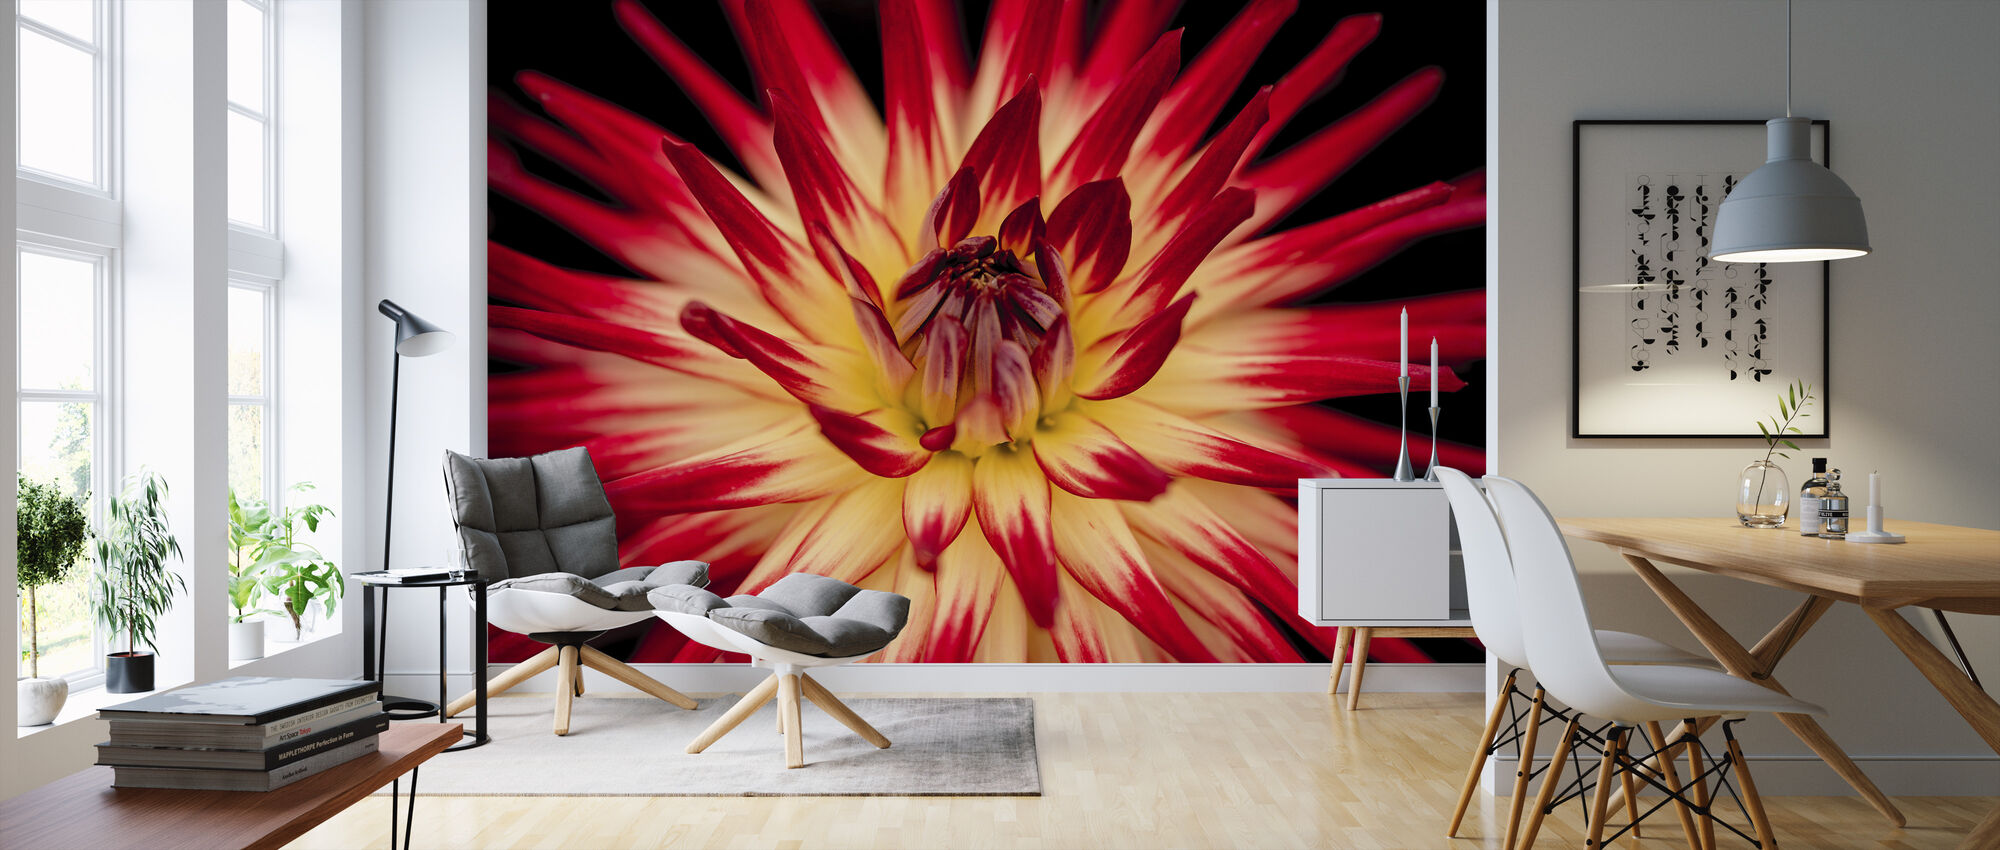 Yellow and Red Flower - Wallpaper - Living Room